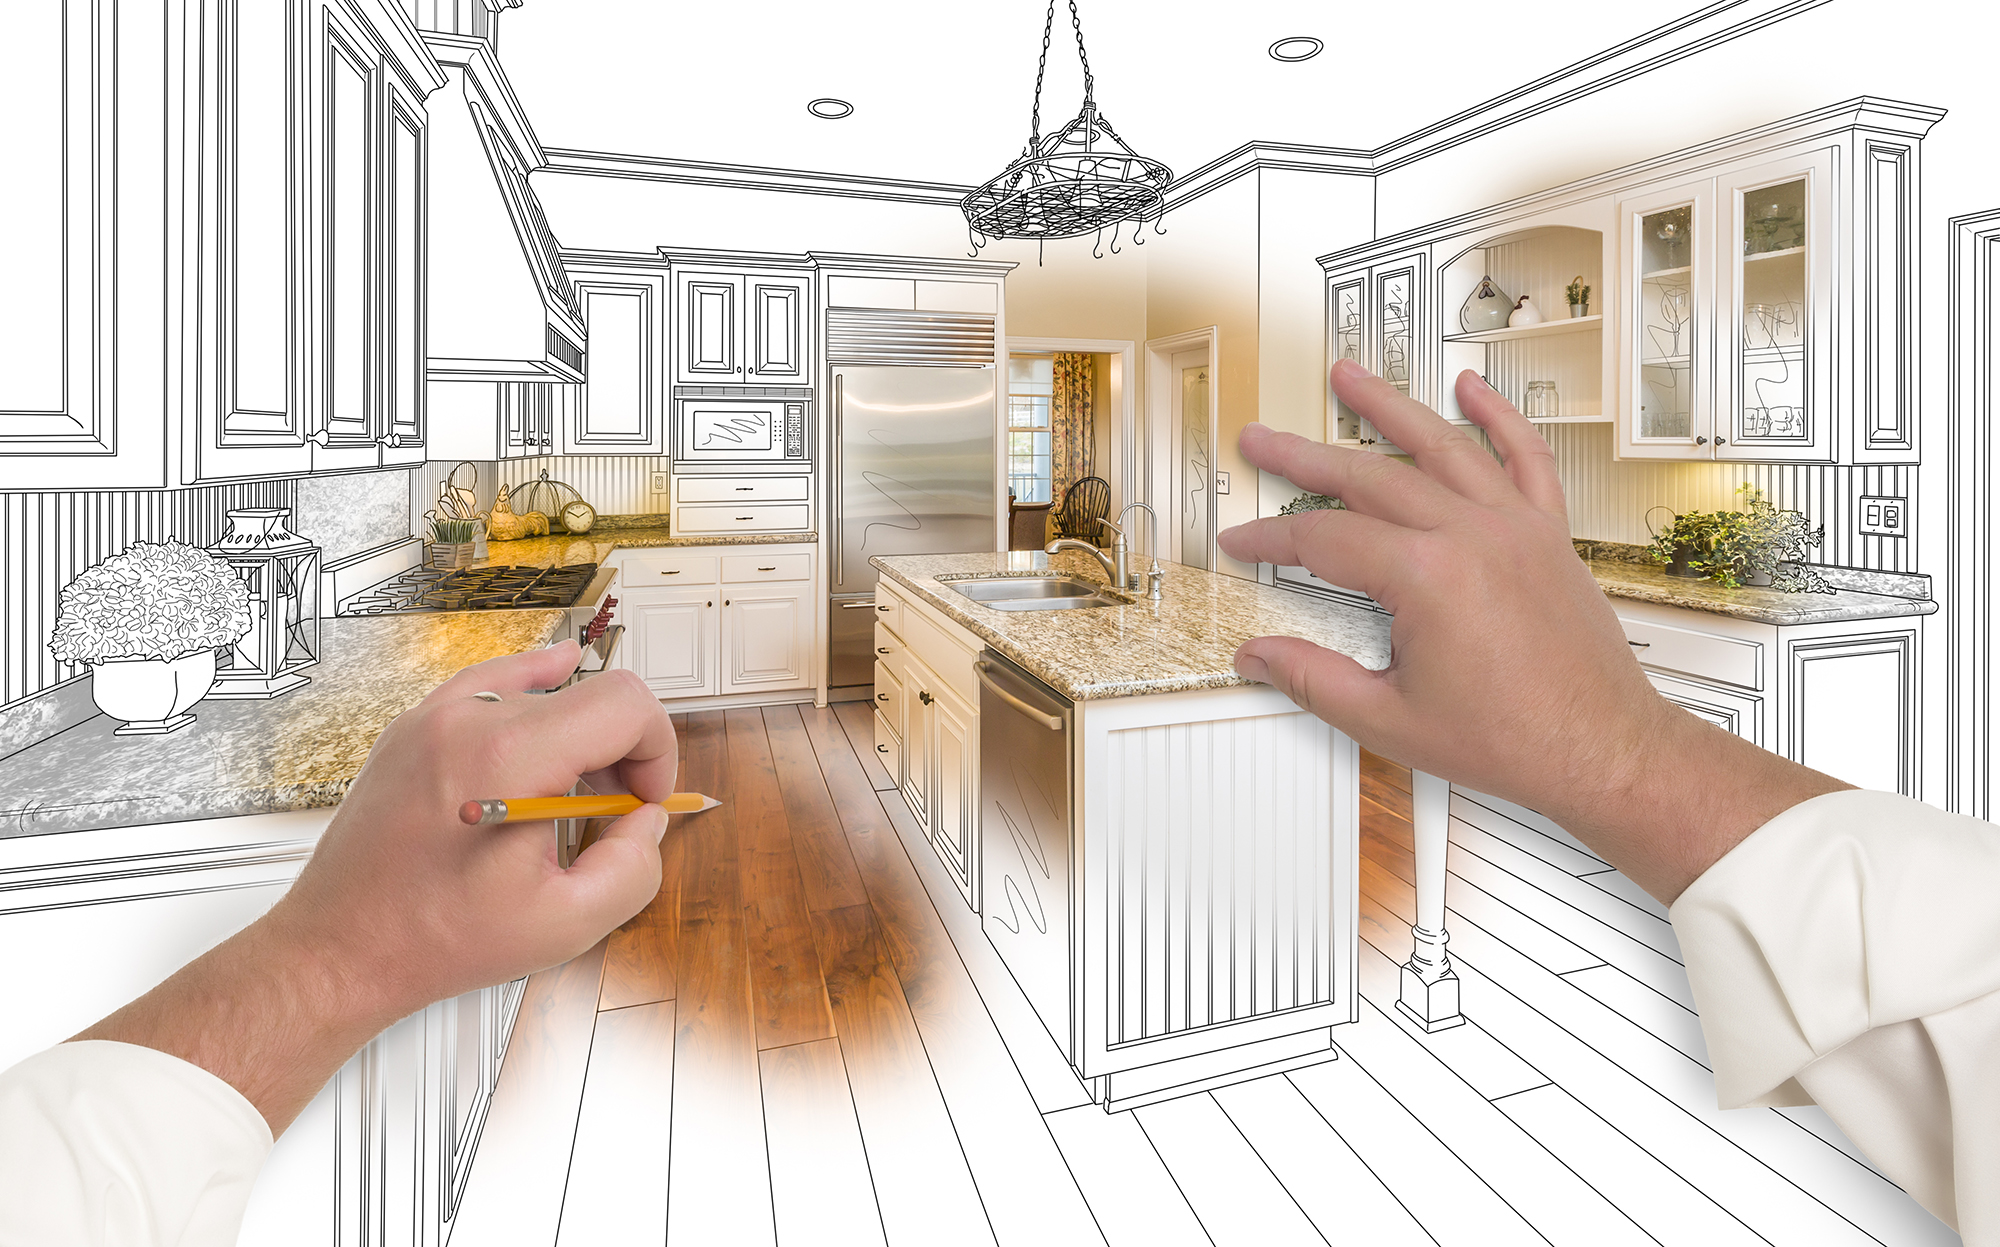 Helpful Things To Consider When Deciding To Renovate... or Buy New?